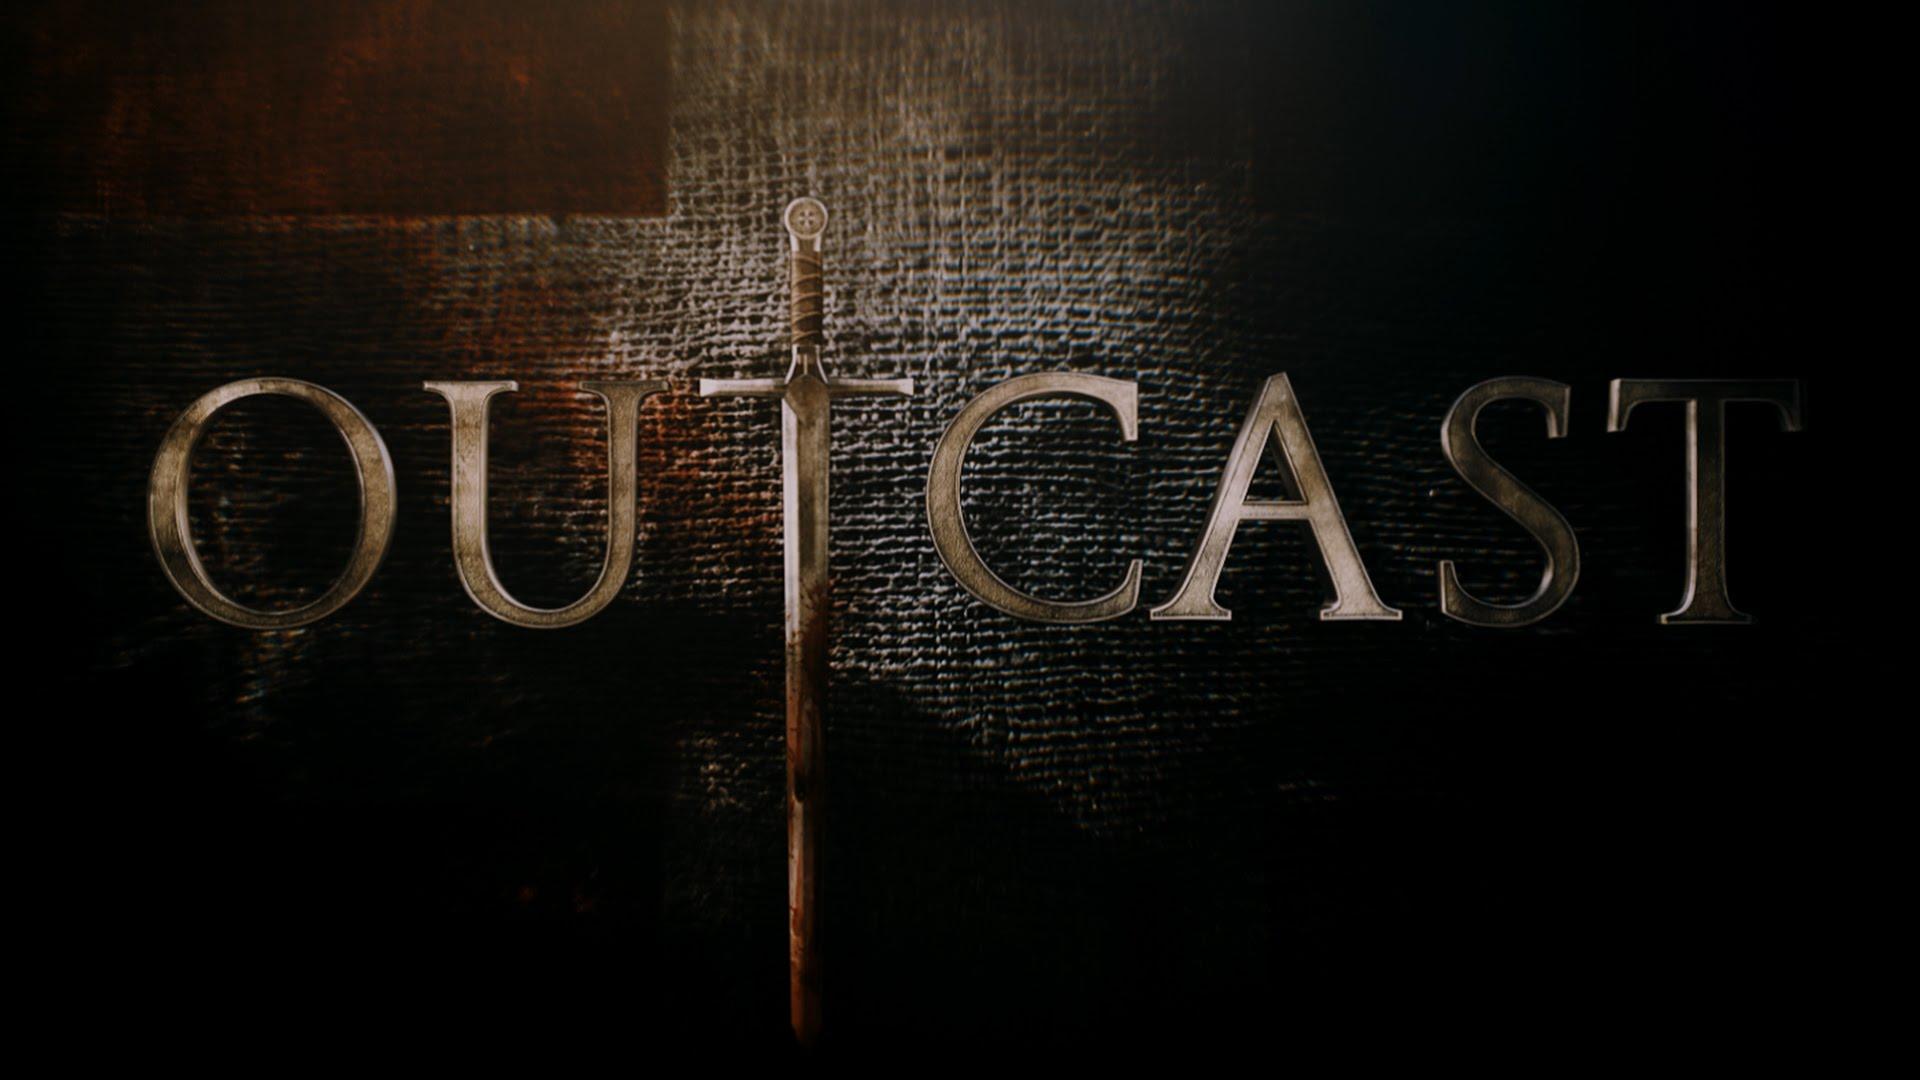 1920x1080 > Outcast Wallpapers